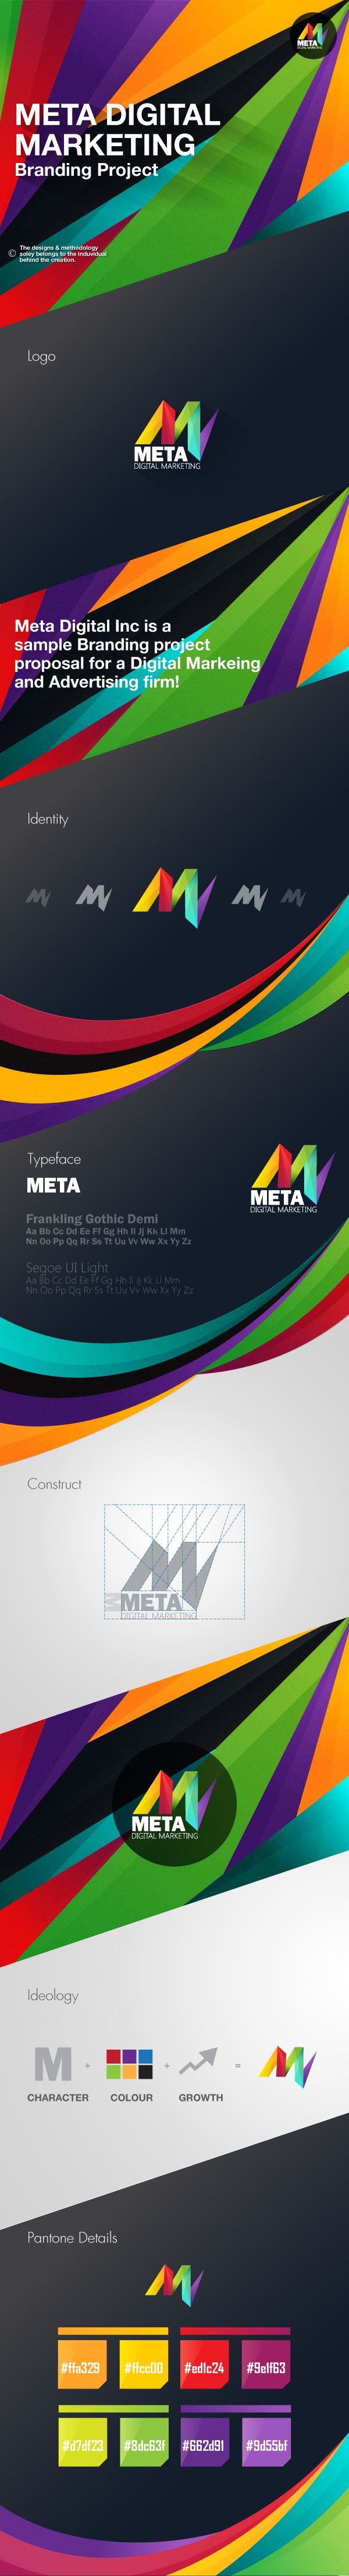 Meta Digital Inc is asample Branding projectproposal for a Digital Markeingand Advertising firm!